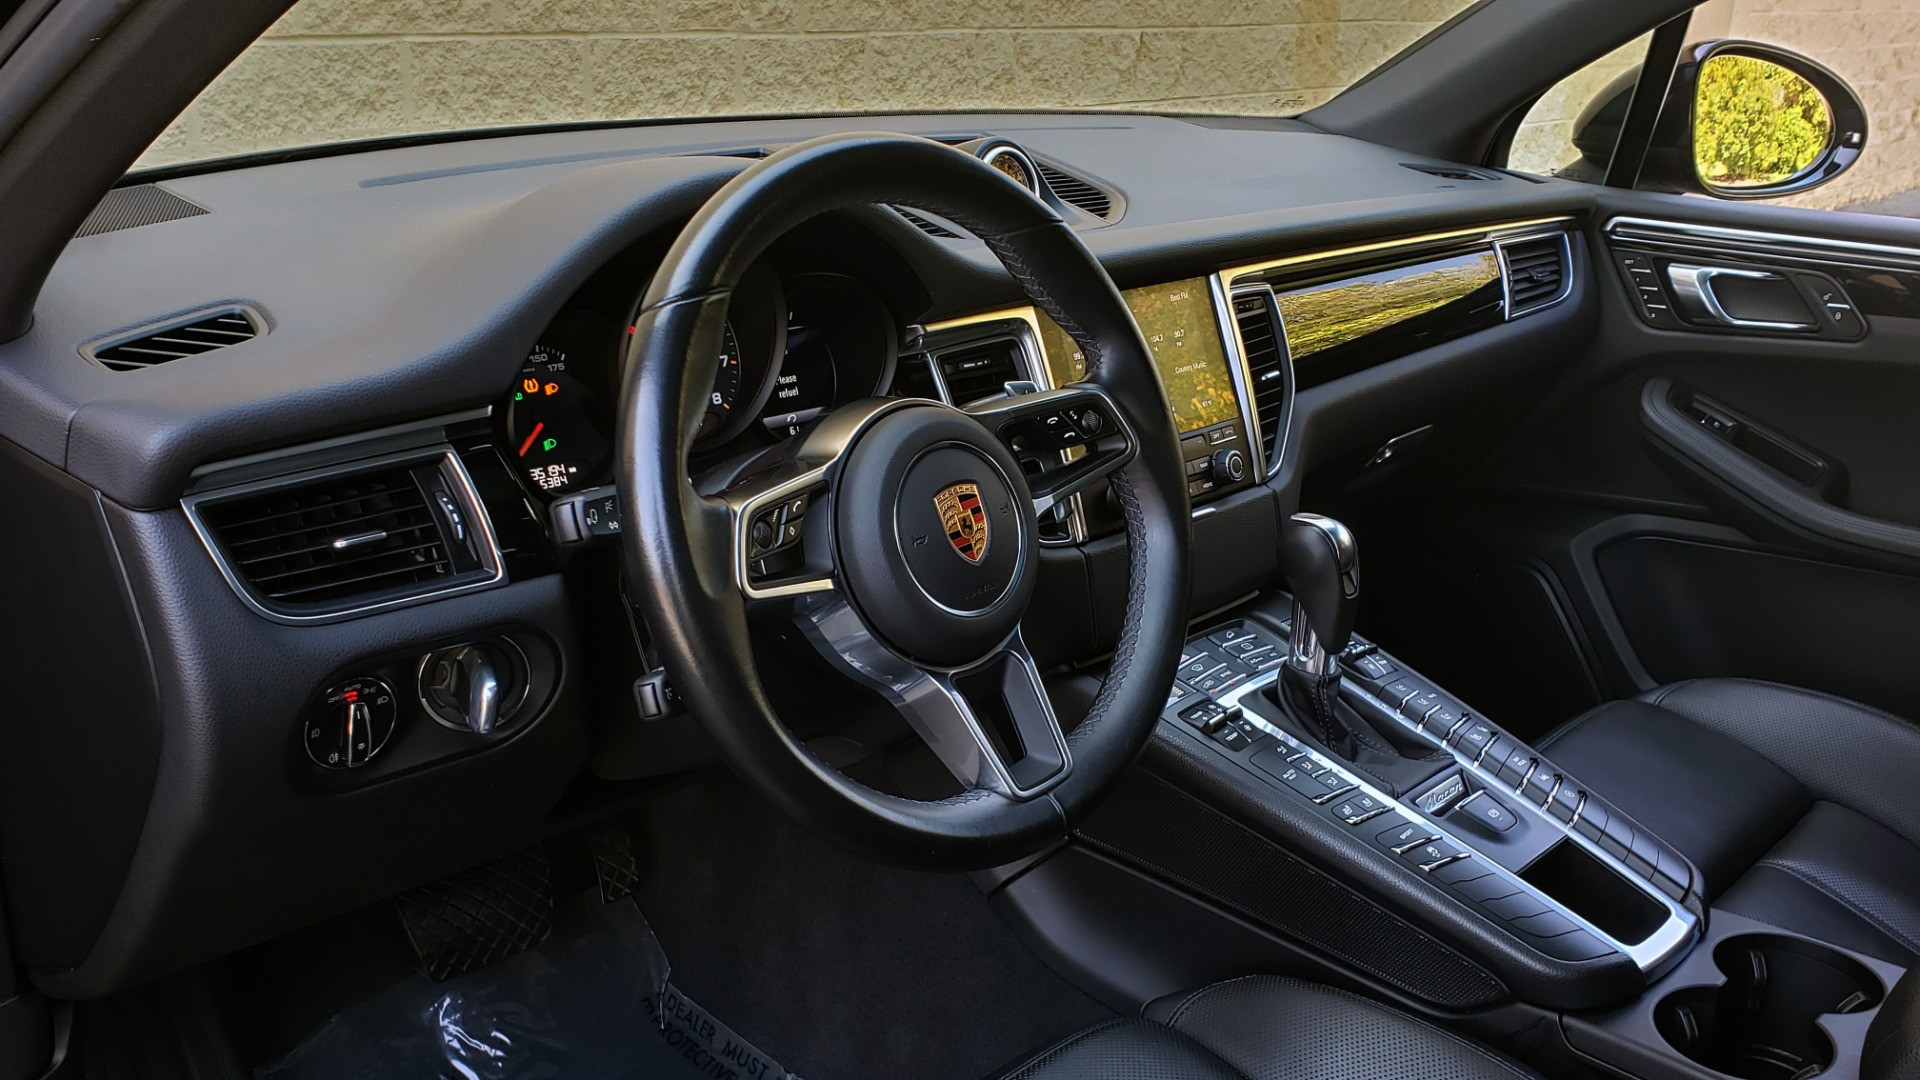 Used 2018 Porsche MACAN PREMIUM PKG PLUS / NAV / PDK / BOSE / REARVIEW for sale Sold at Formula Imports in Charlotte NC 28227 42